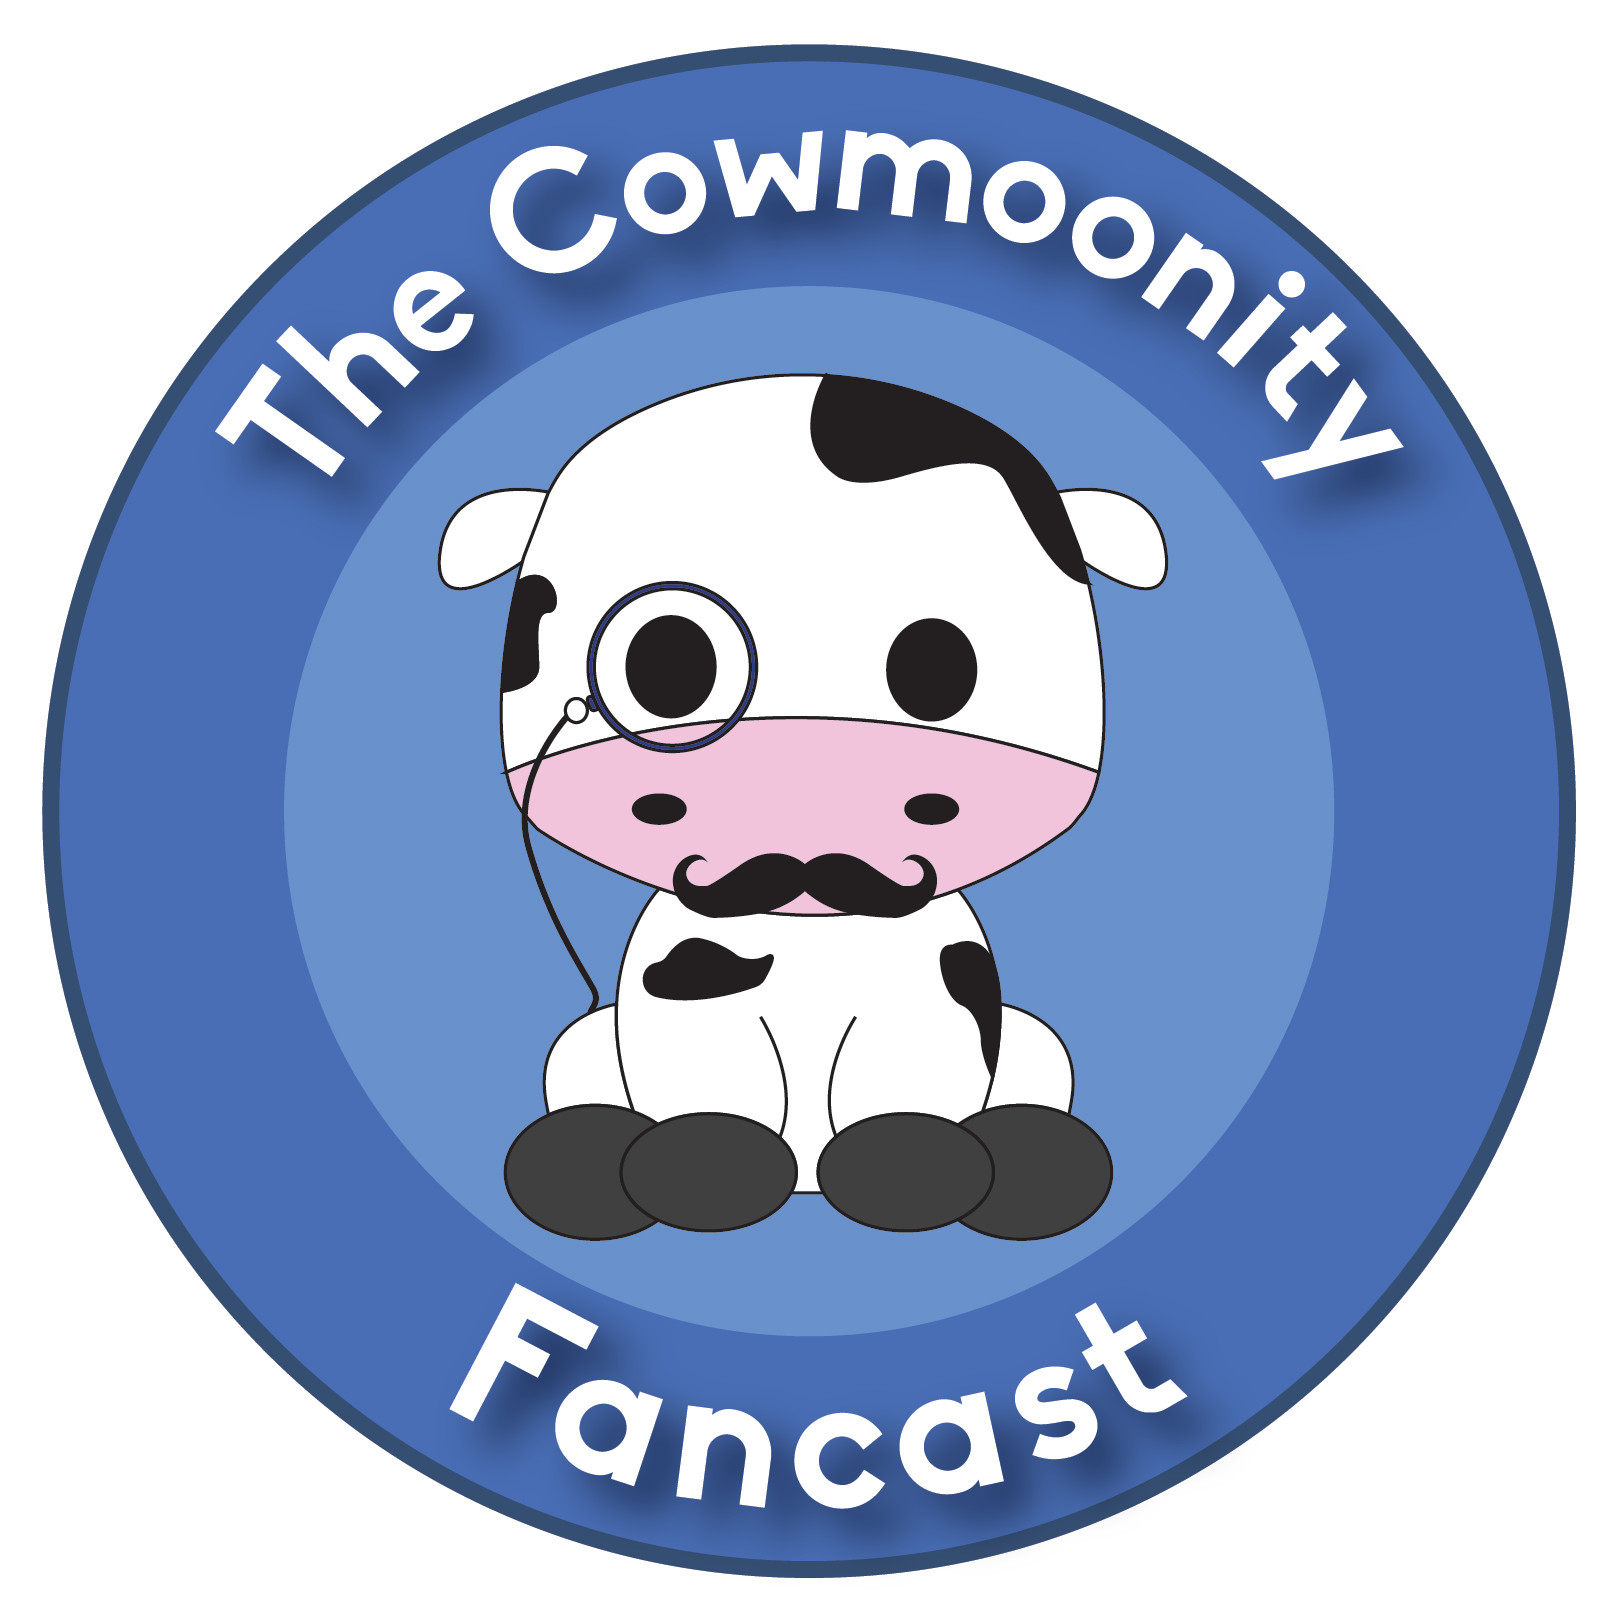 The Cowmoonity Fancast